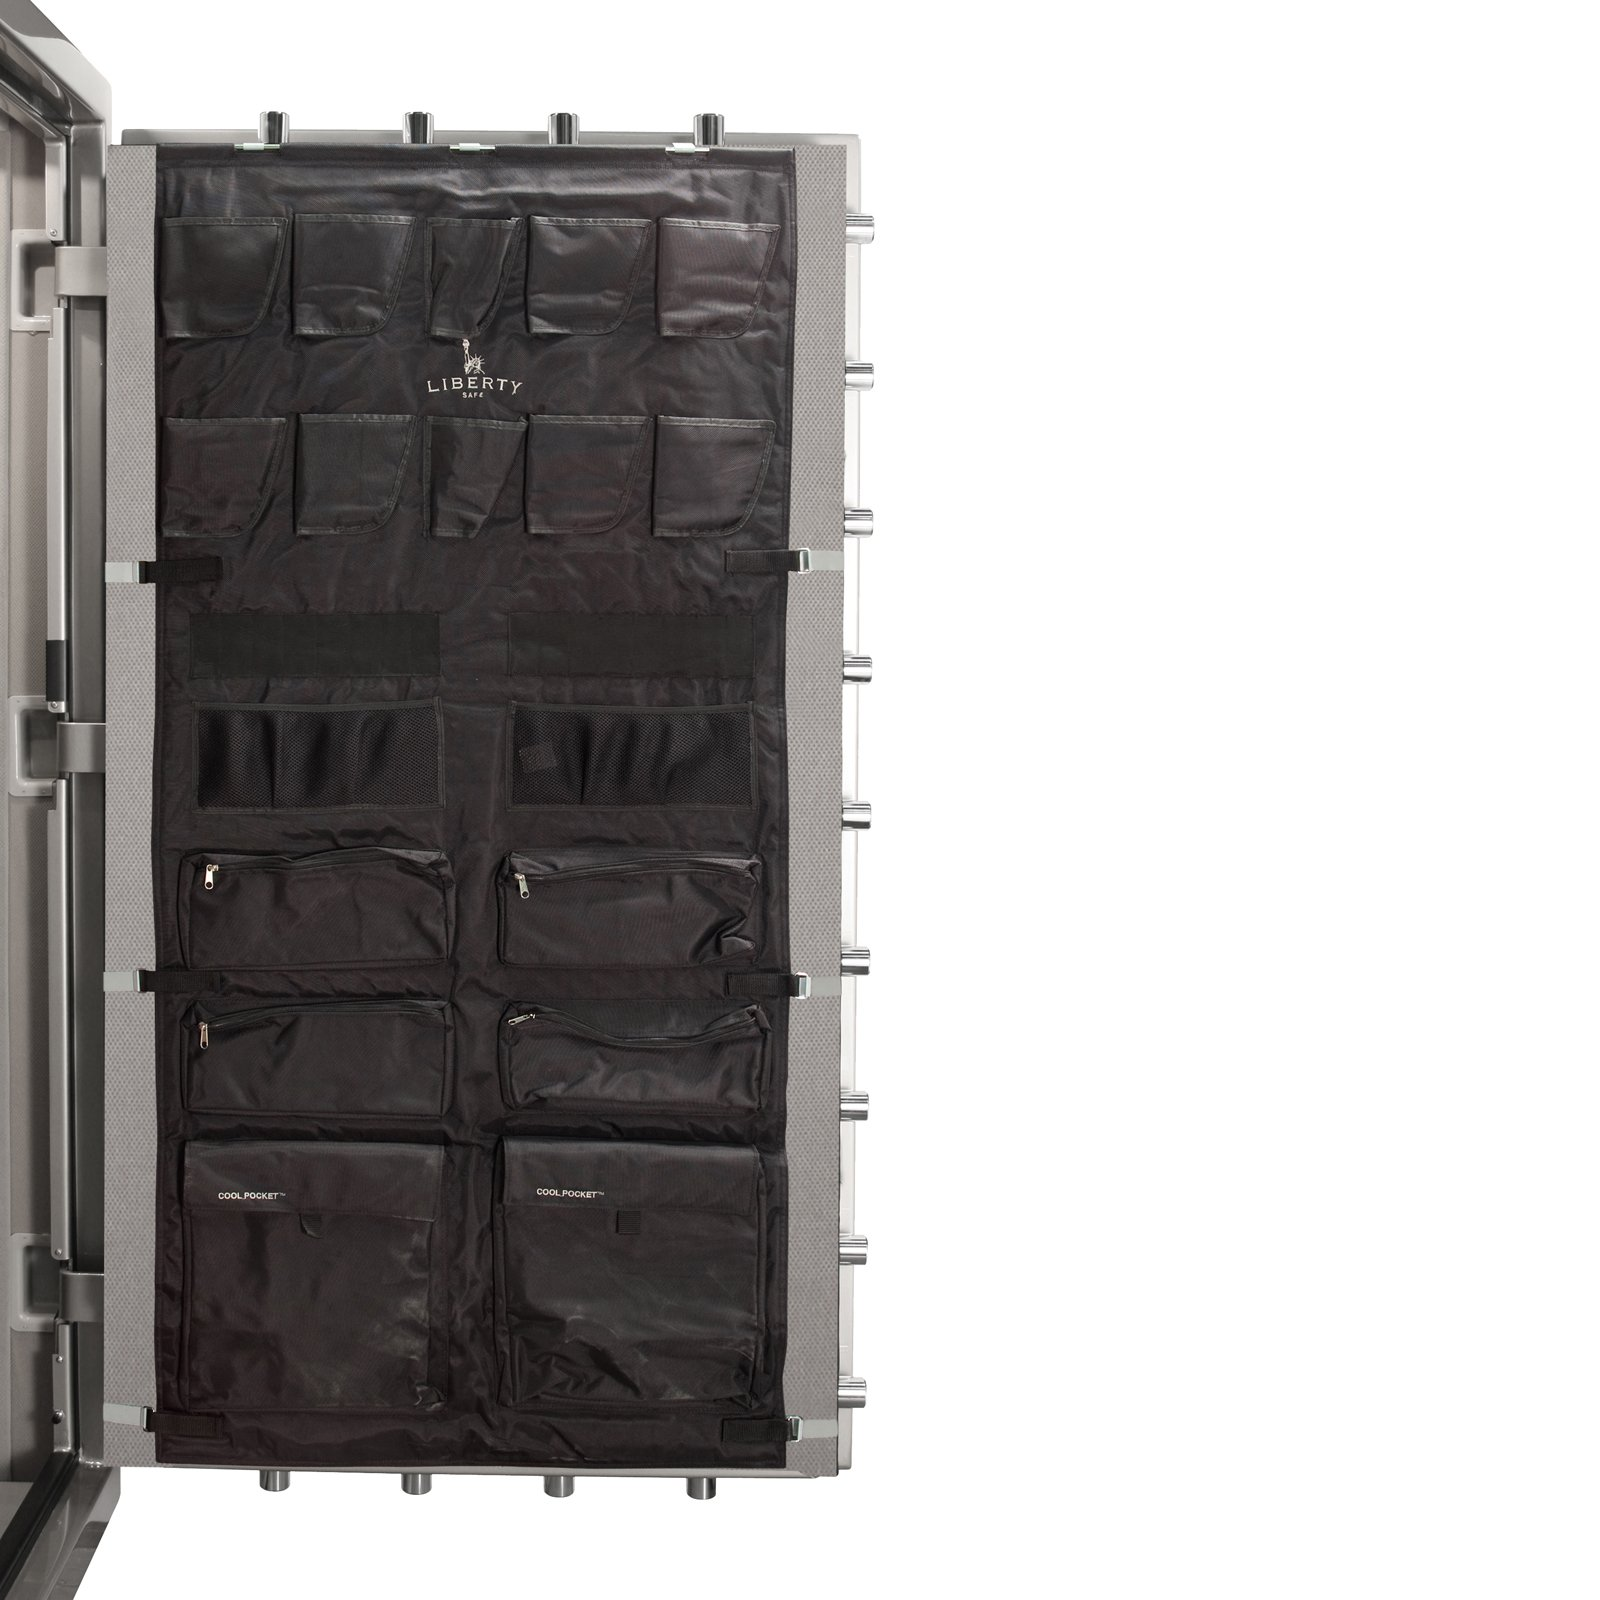 Liberty Door Panel - Fits Gun Safe Models 48-64 - Accessory and Organizer for Pistols, Handguns, Ammunition, Magazines, Choke Tubes and Other Security Products - Item 10587 - Black by Liberty Safes